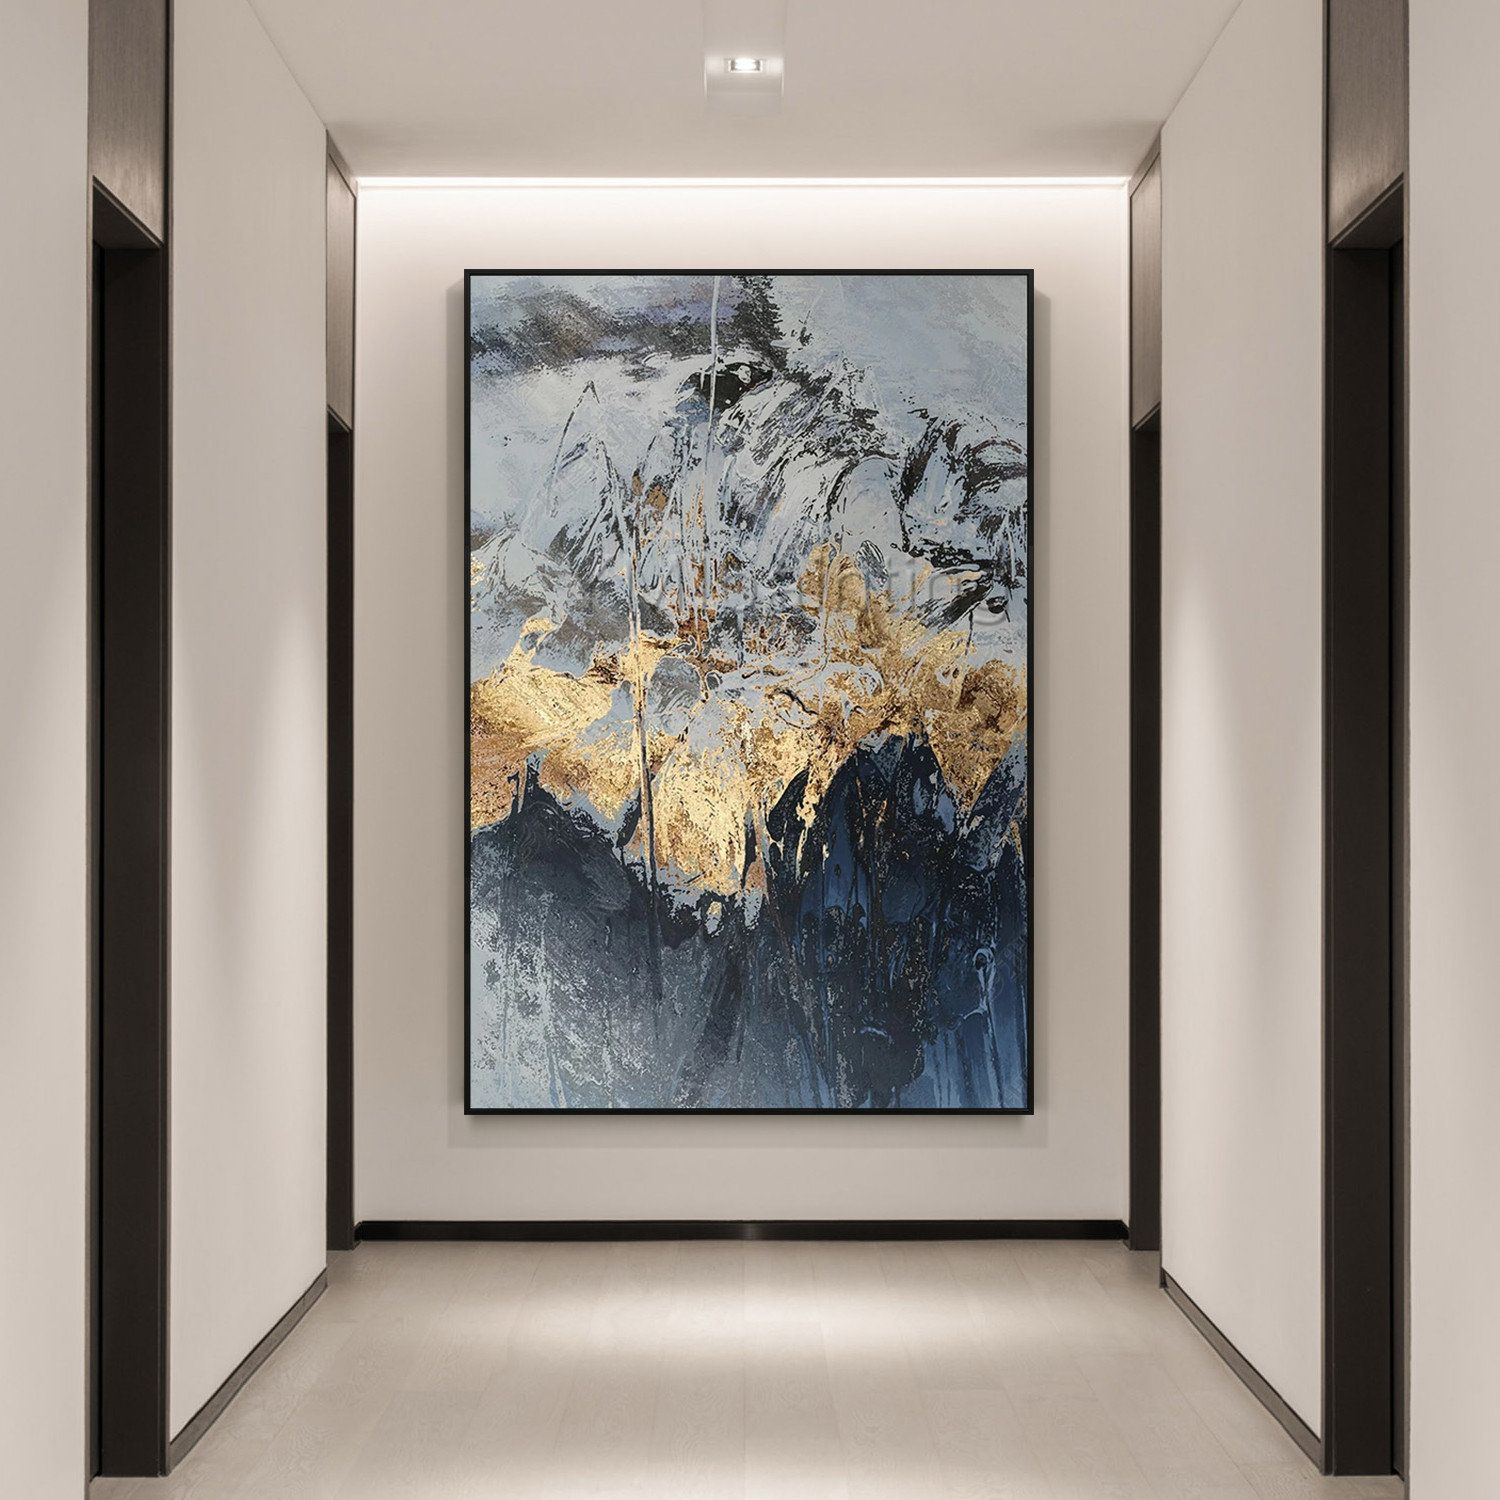 Large Abstract Gold Leaf Moutain Painting Framed Wall Art Paintings On Canvas Acrylic Black Navy Blue Painting Ymipainting Wall Pictures Blau Malerei Abstraktes Gemälde Gemälde Auf Leinwand